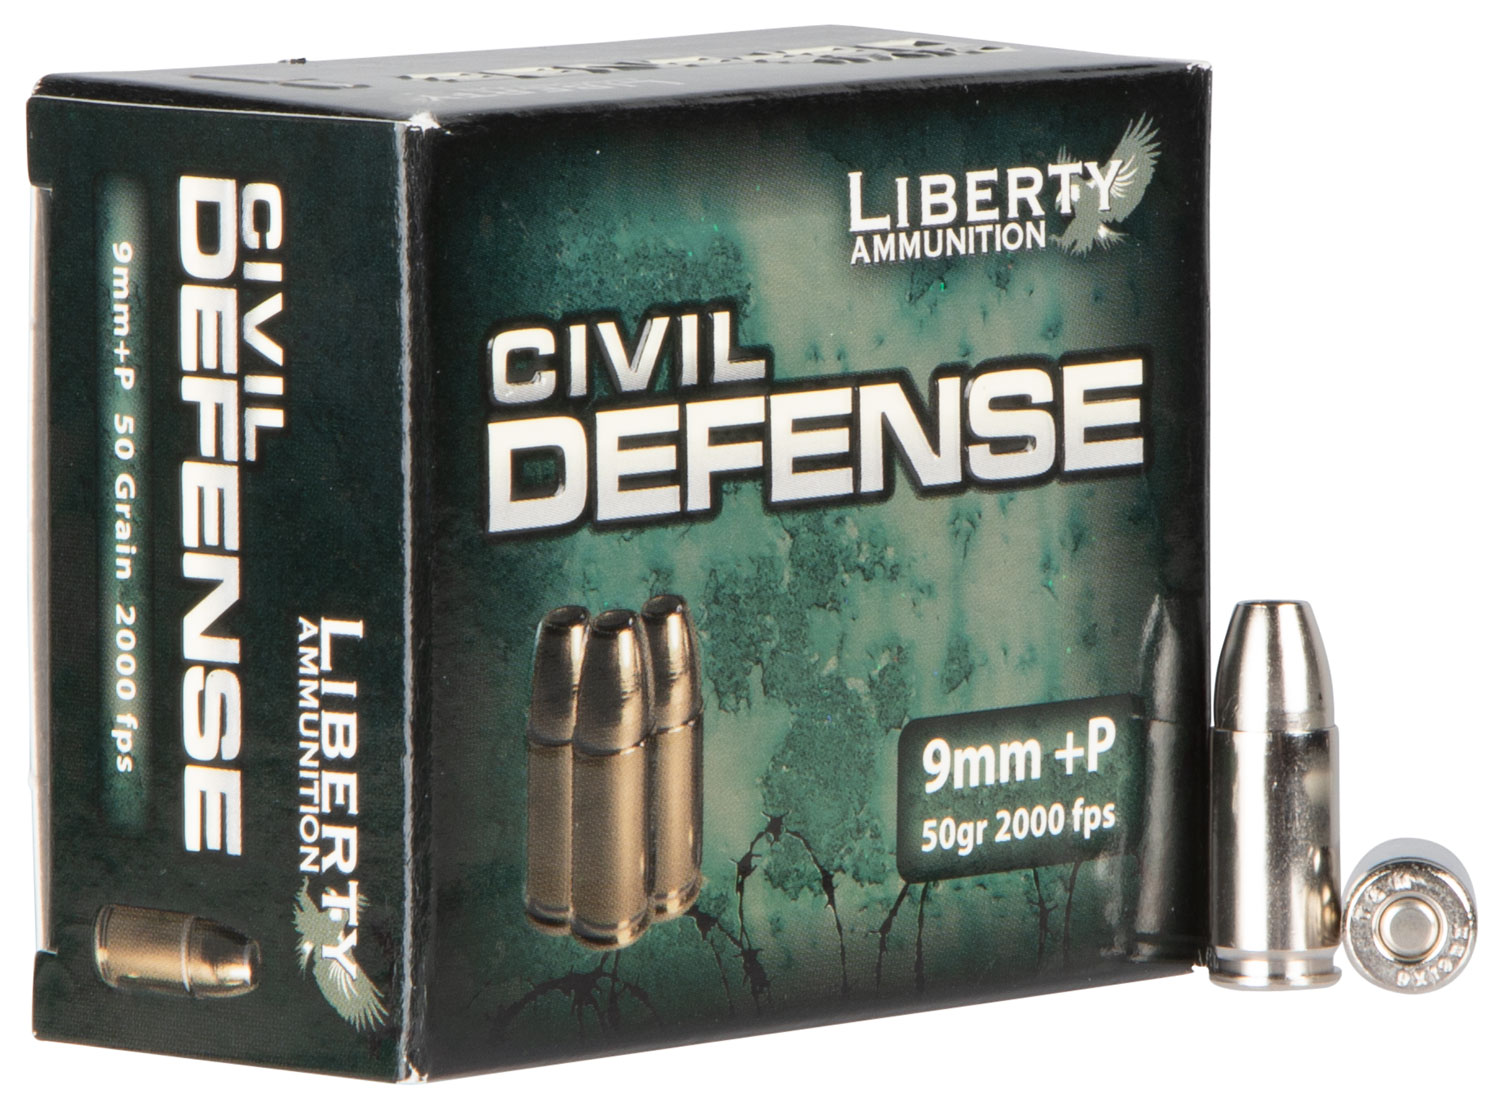 Liberty LA-CD-09-014 Civil Defense 9mm +P 50GR LF Fragmenting HP 20Bx/50Cs